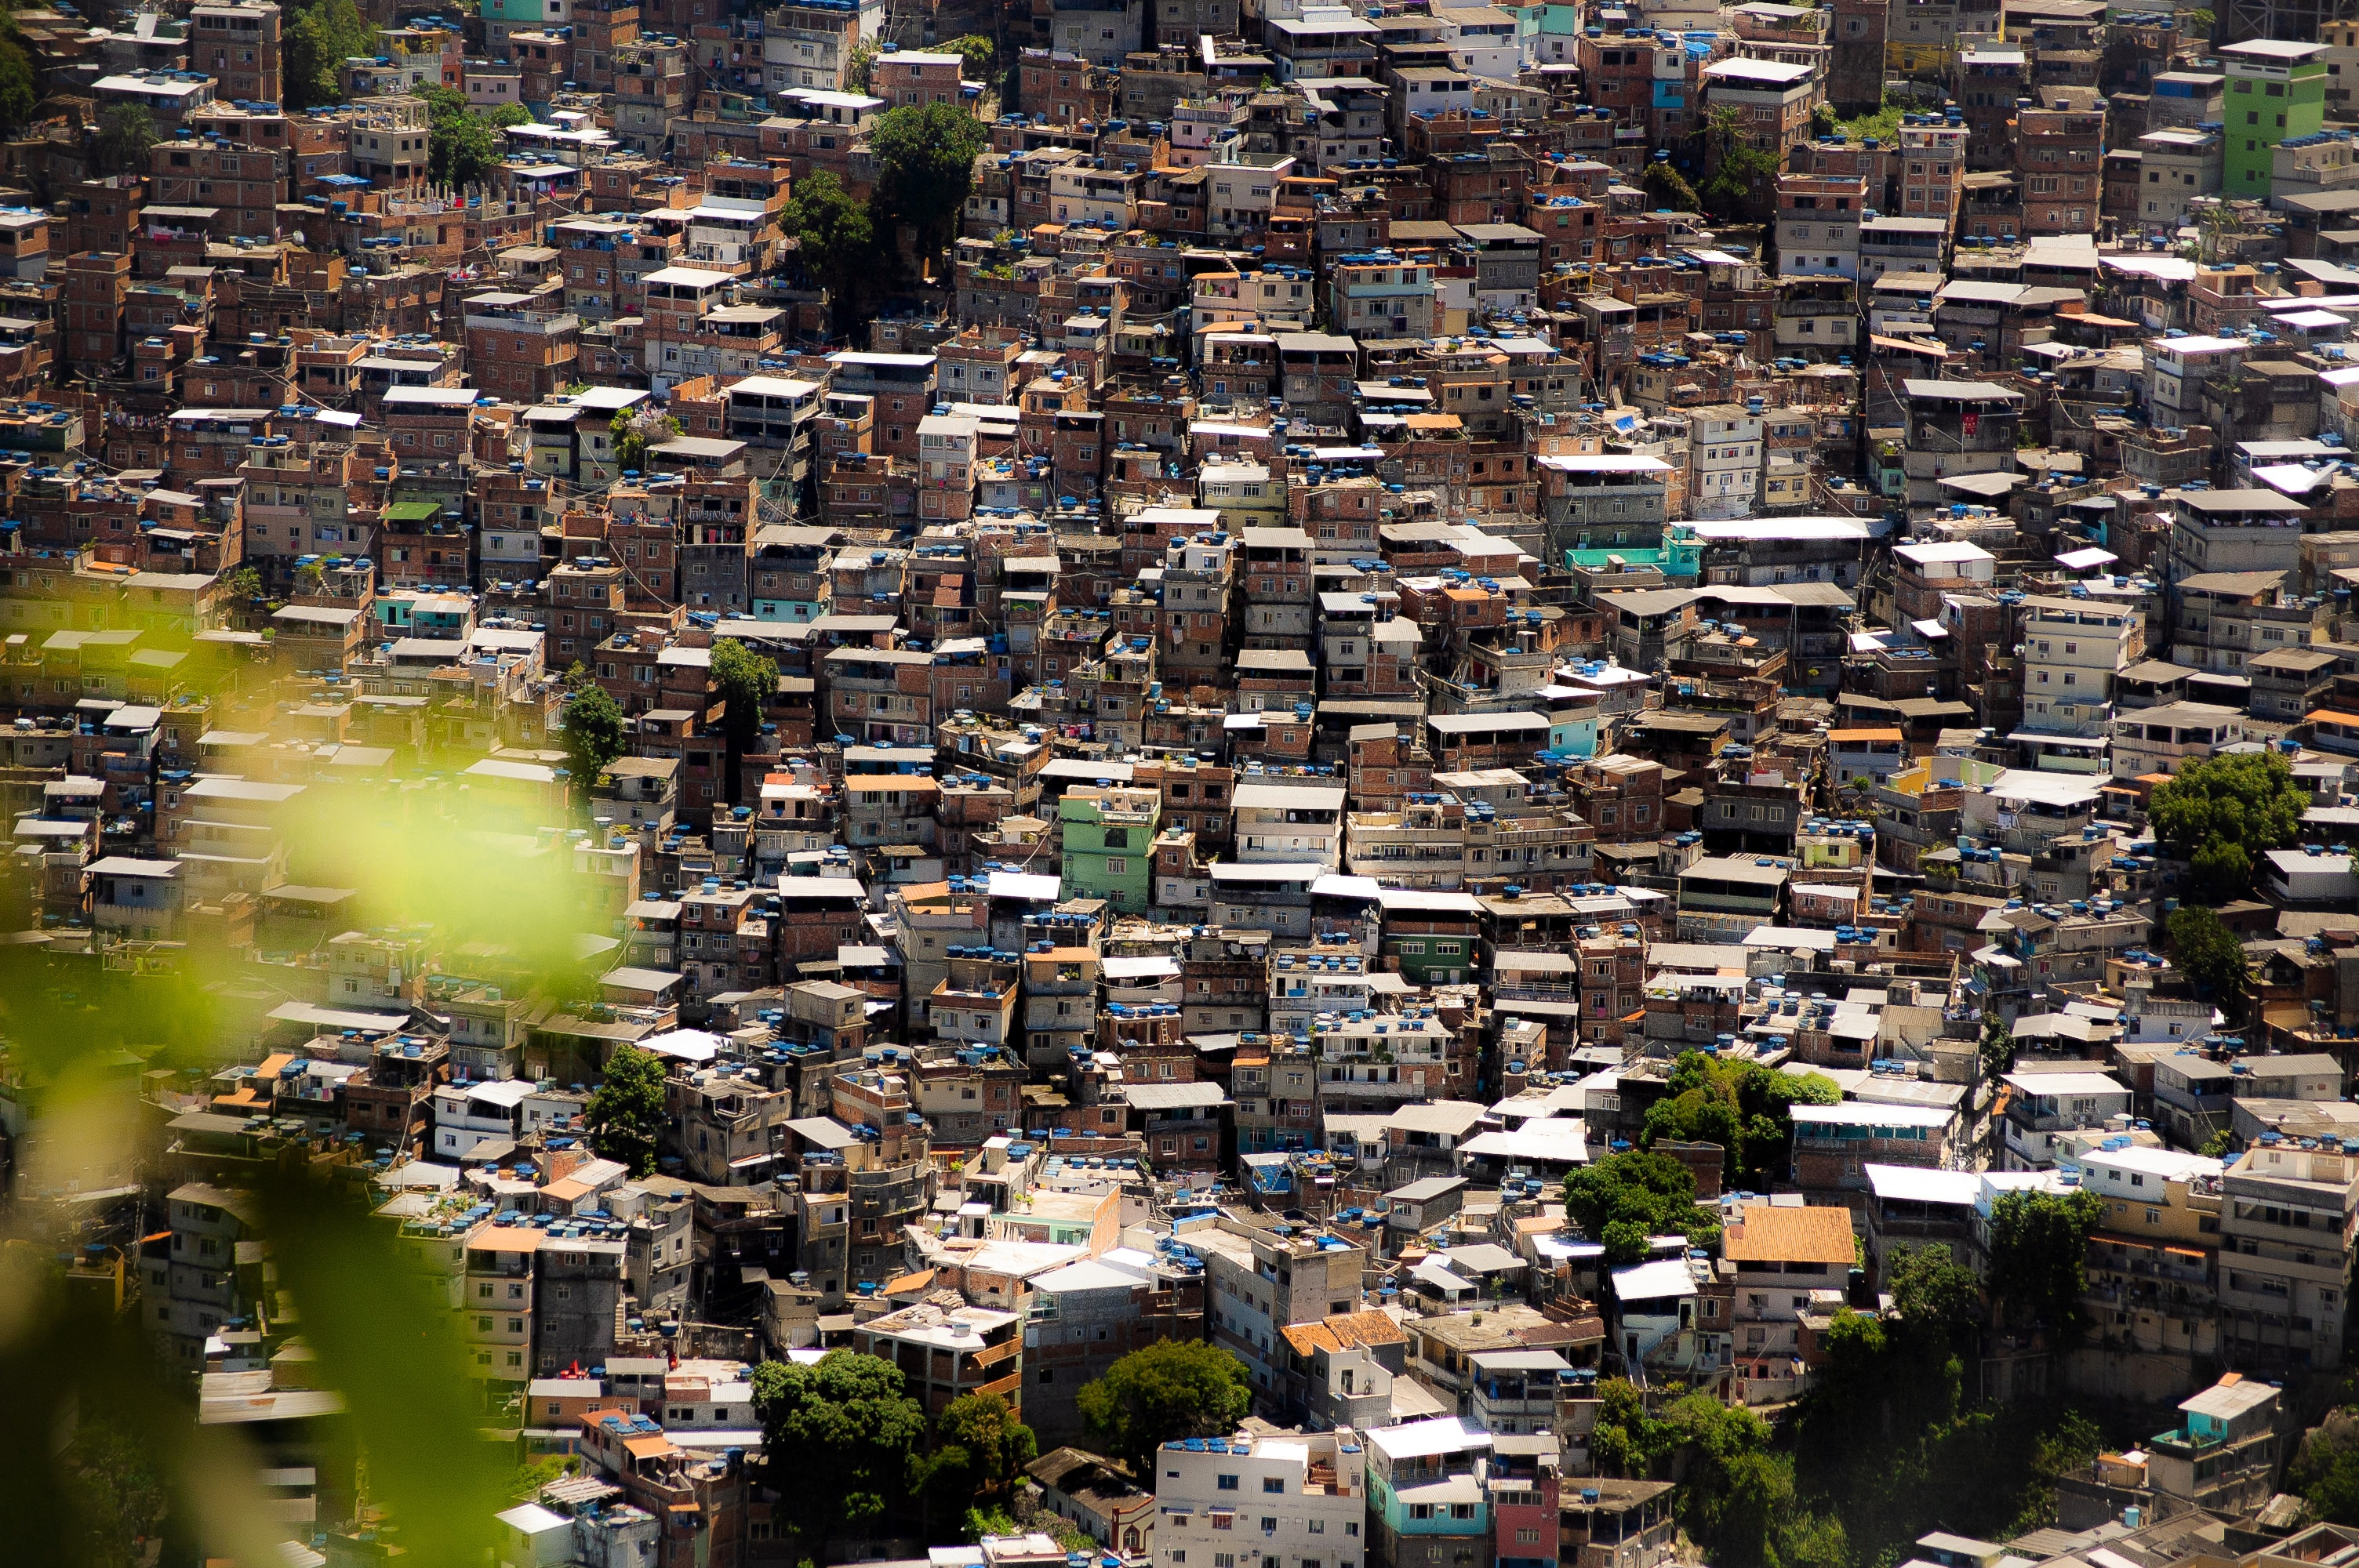 slum-area-photo